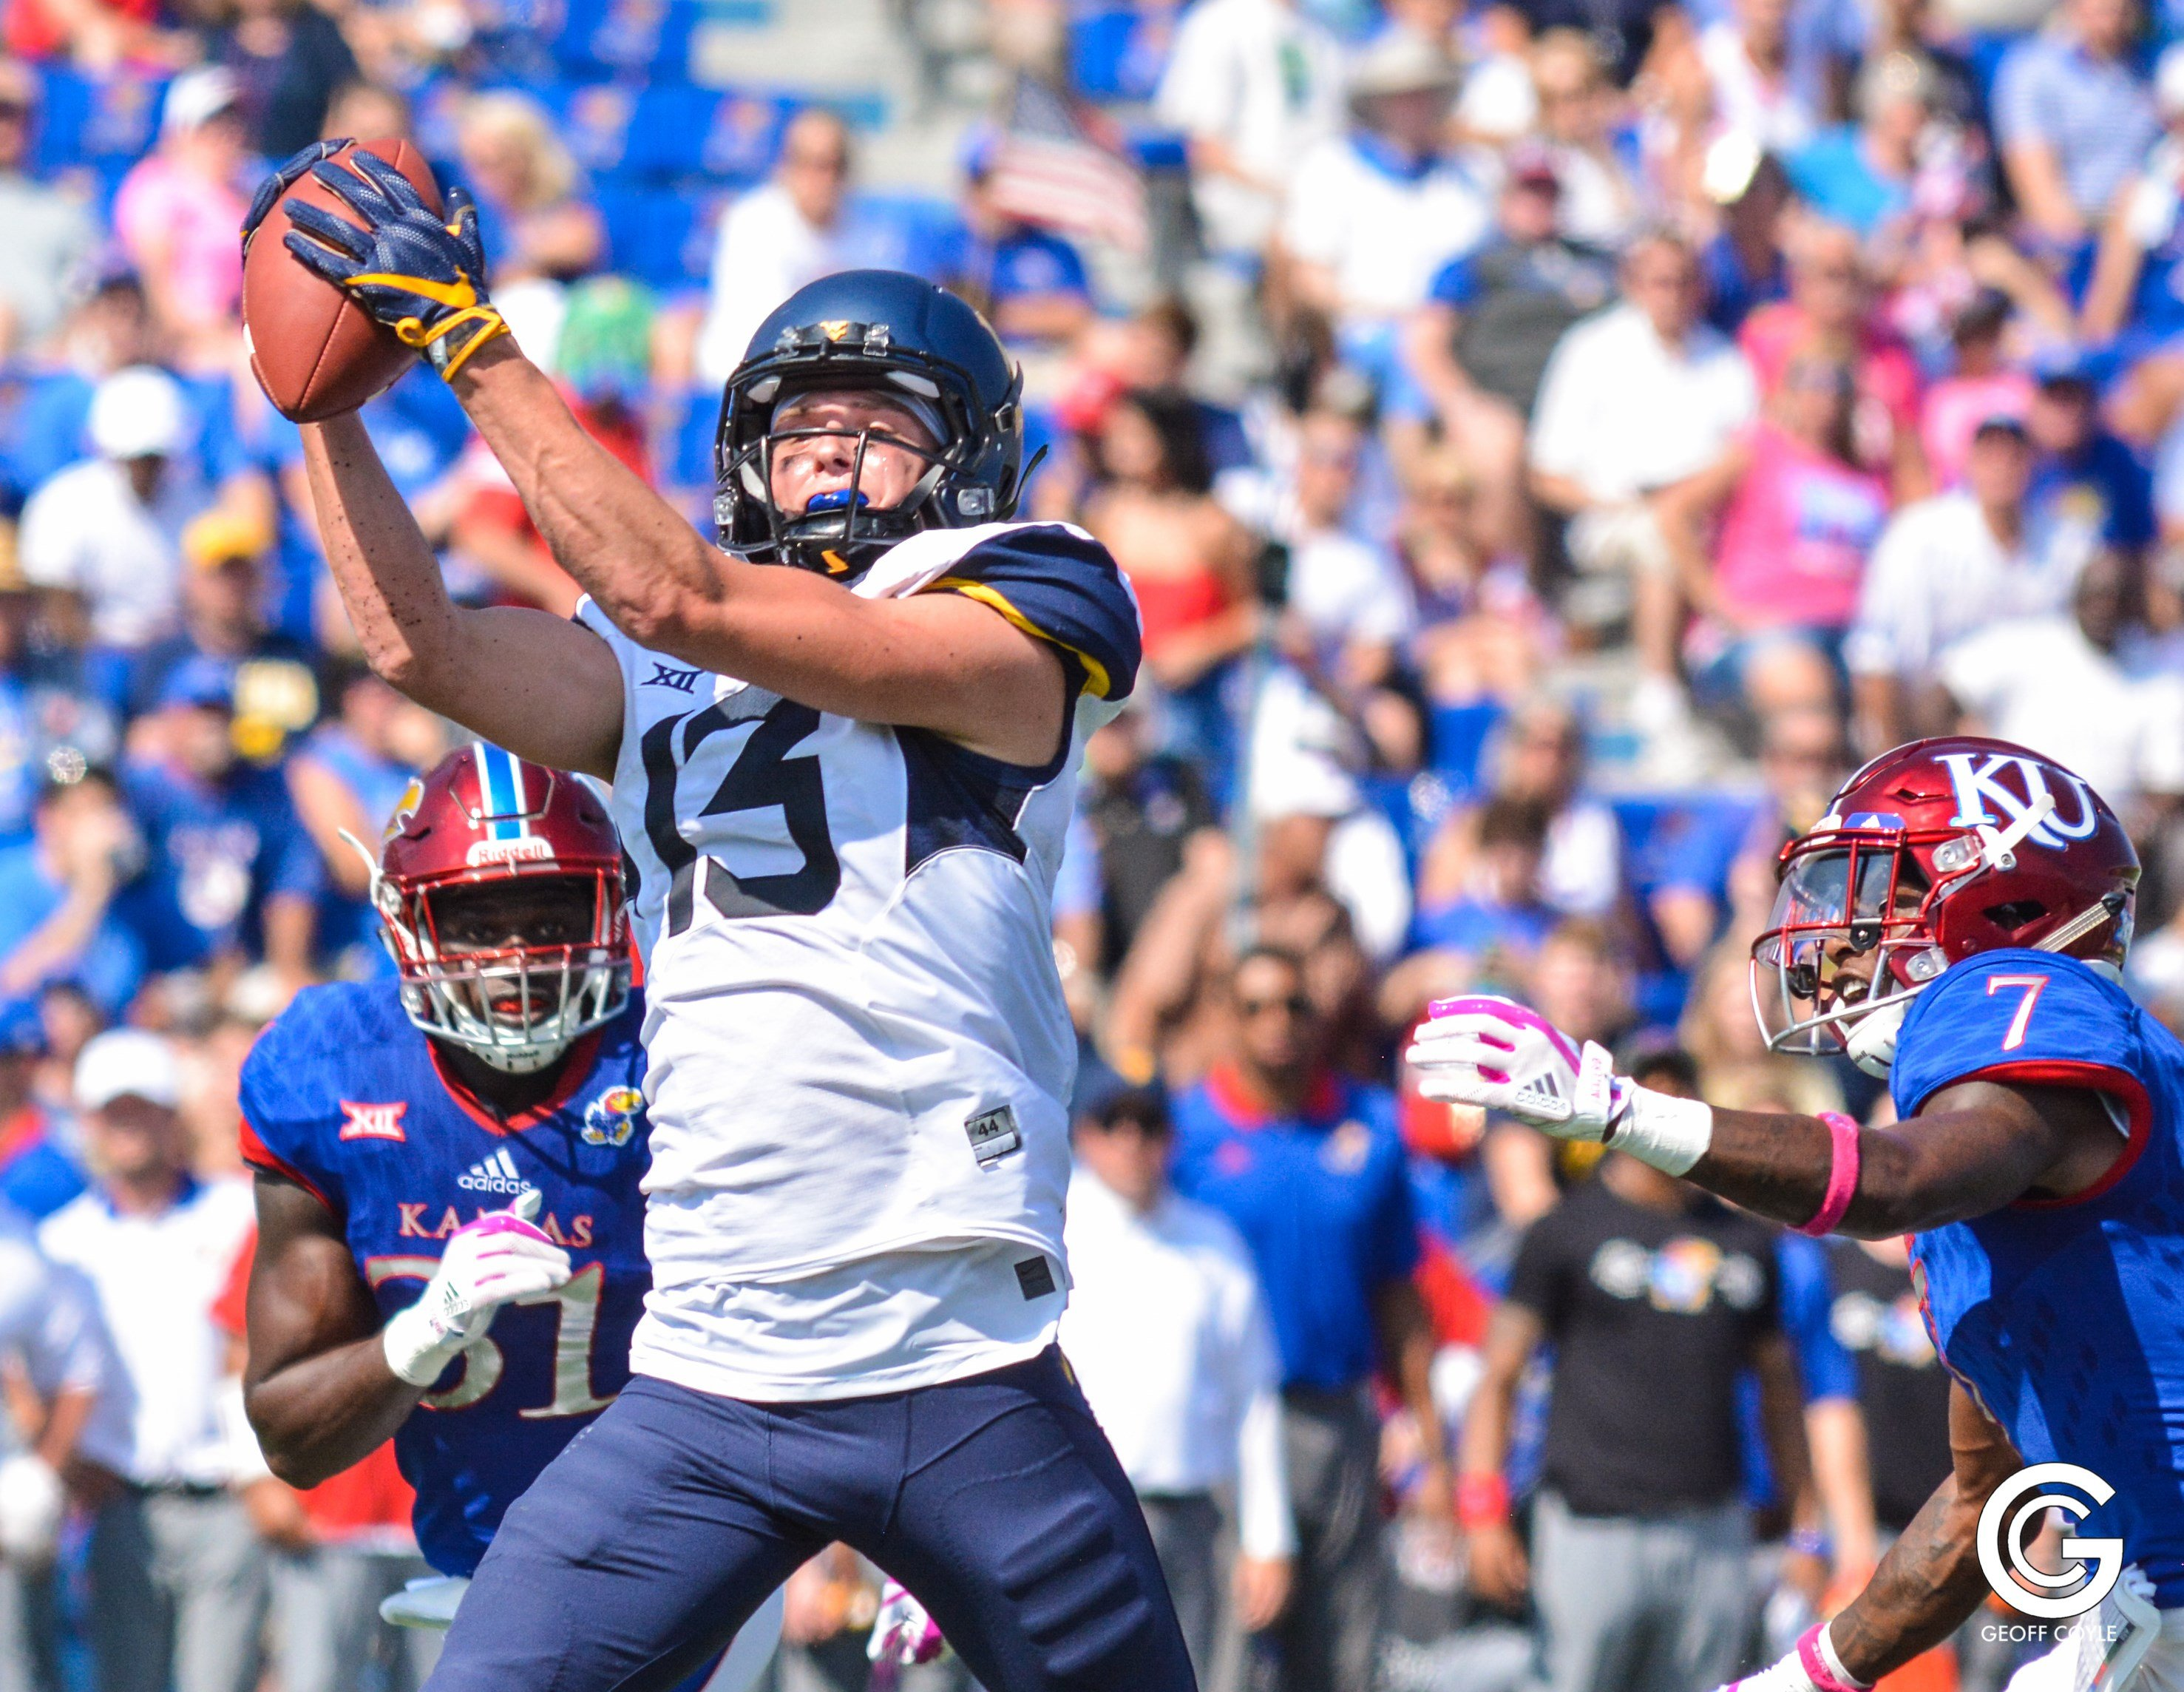 David Sills reels in a 49-yard touchdown reception, his first of two scores in a 56-34 WVU win over Kansas. (PHOTO: Geoff Coyle)